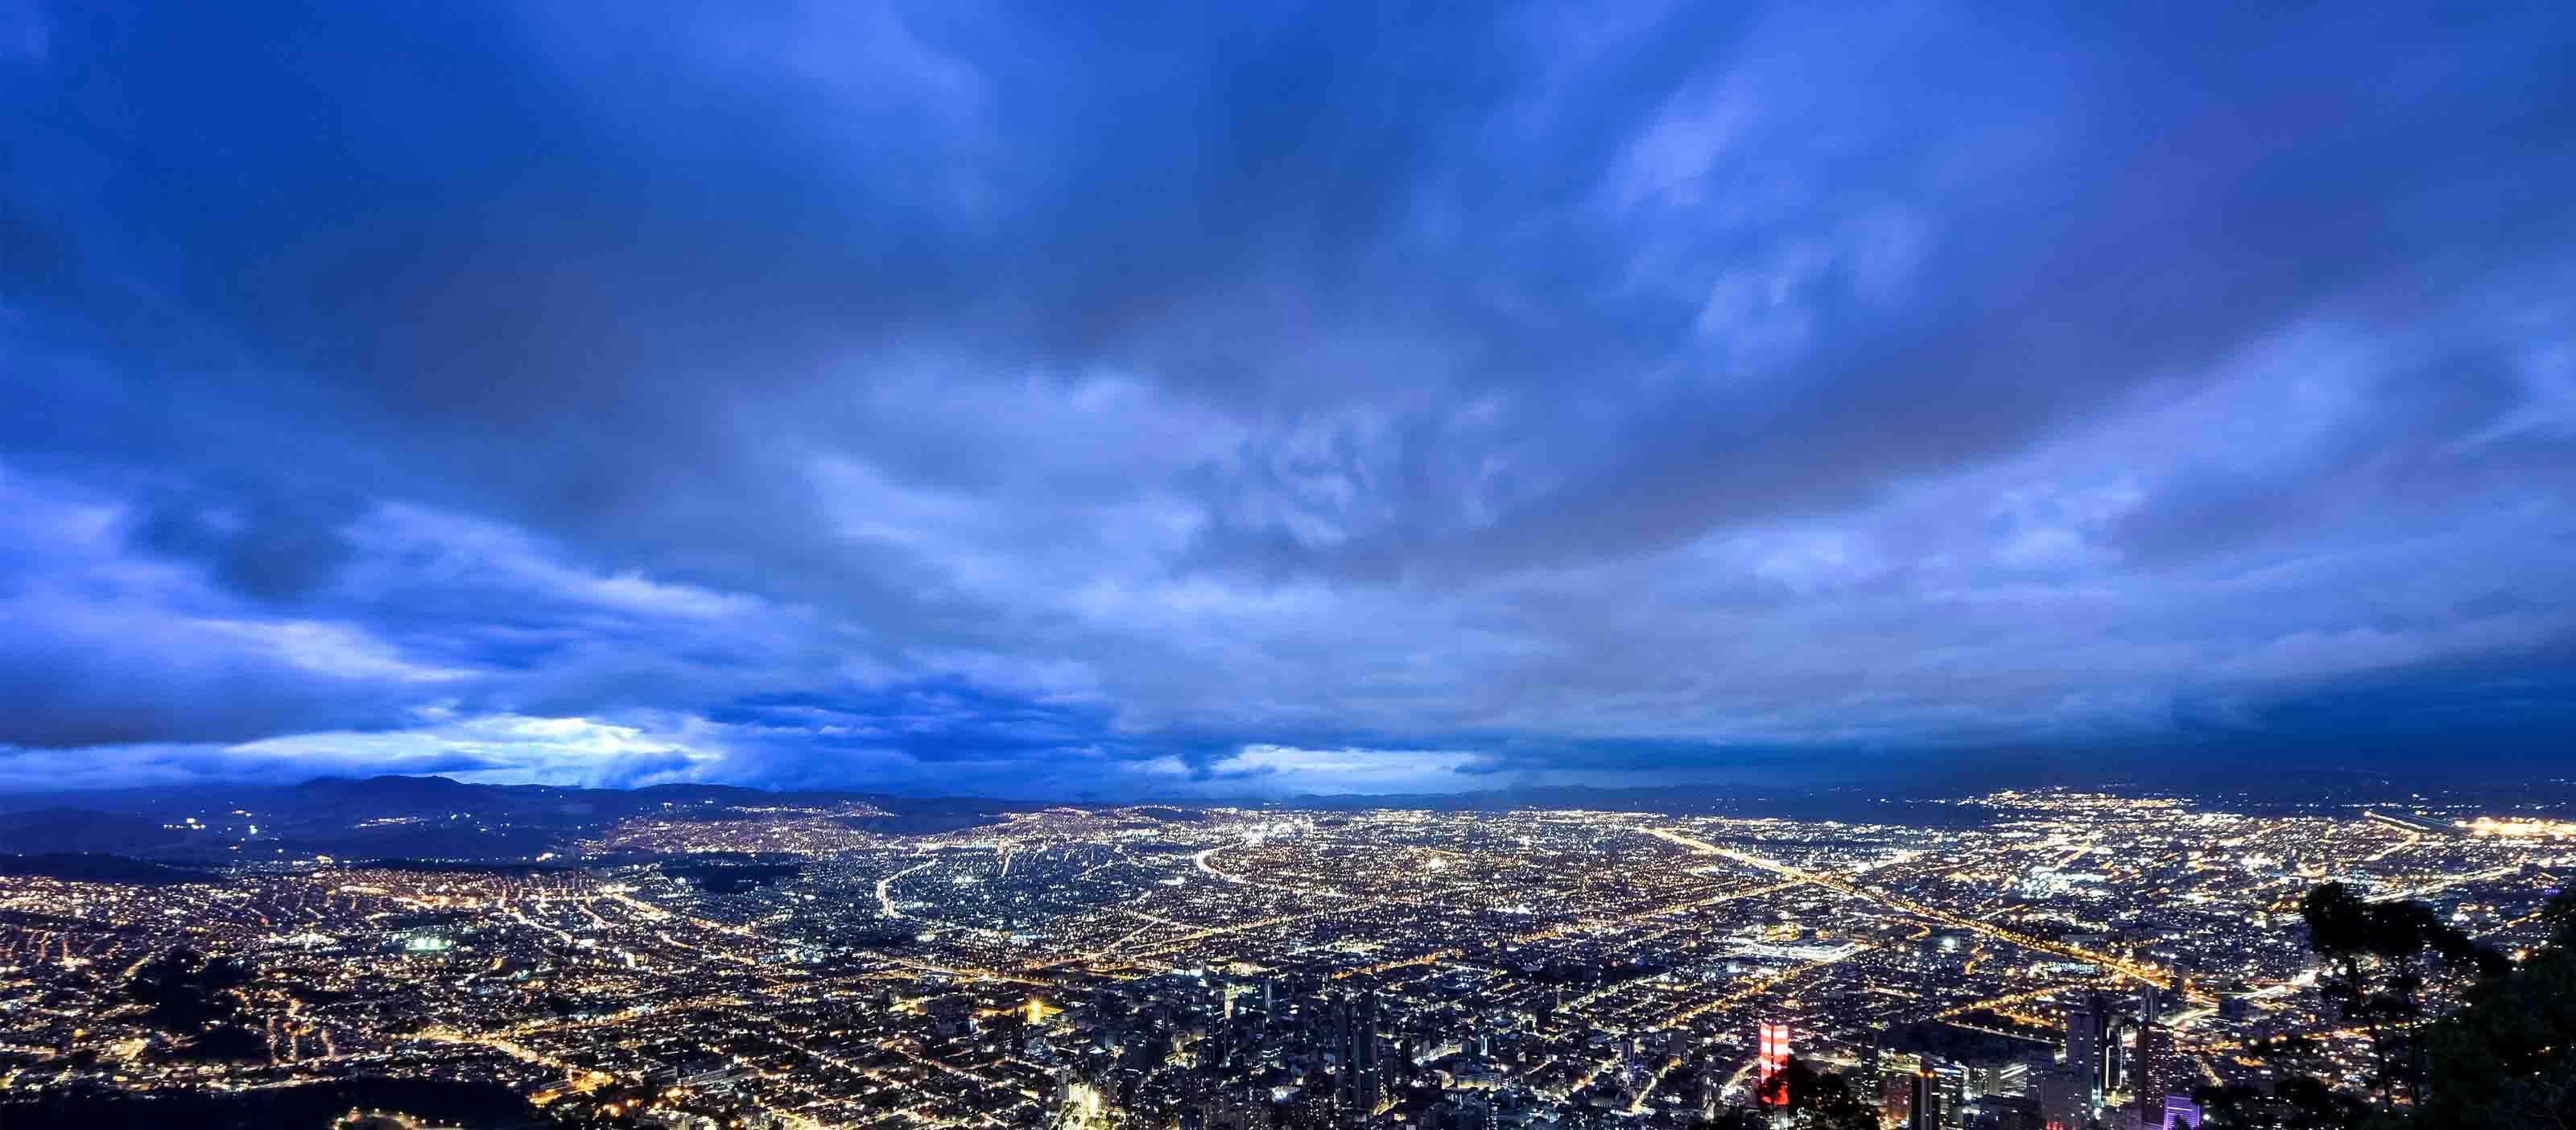 GE Digital software supports the electric grid, lighting skies at nightGE Digital software supports the electric grid, lighting skies at night